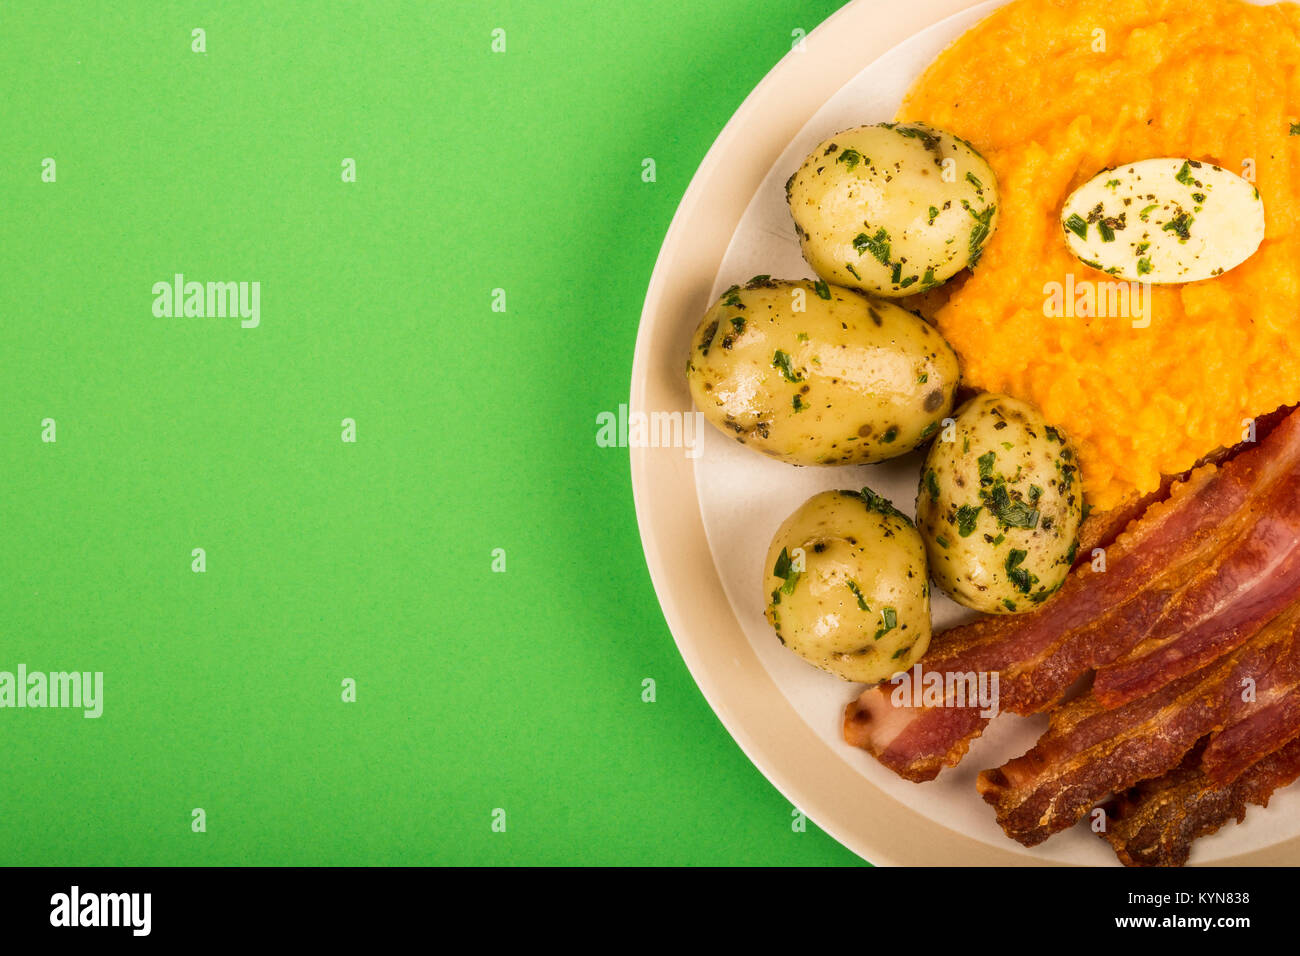 Norwegian Pork or Crispy Bacon With Mashed Swede and Boiled Potatoes Meal Against A Green Background - Stock Image